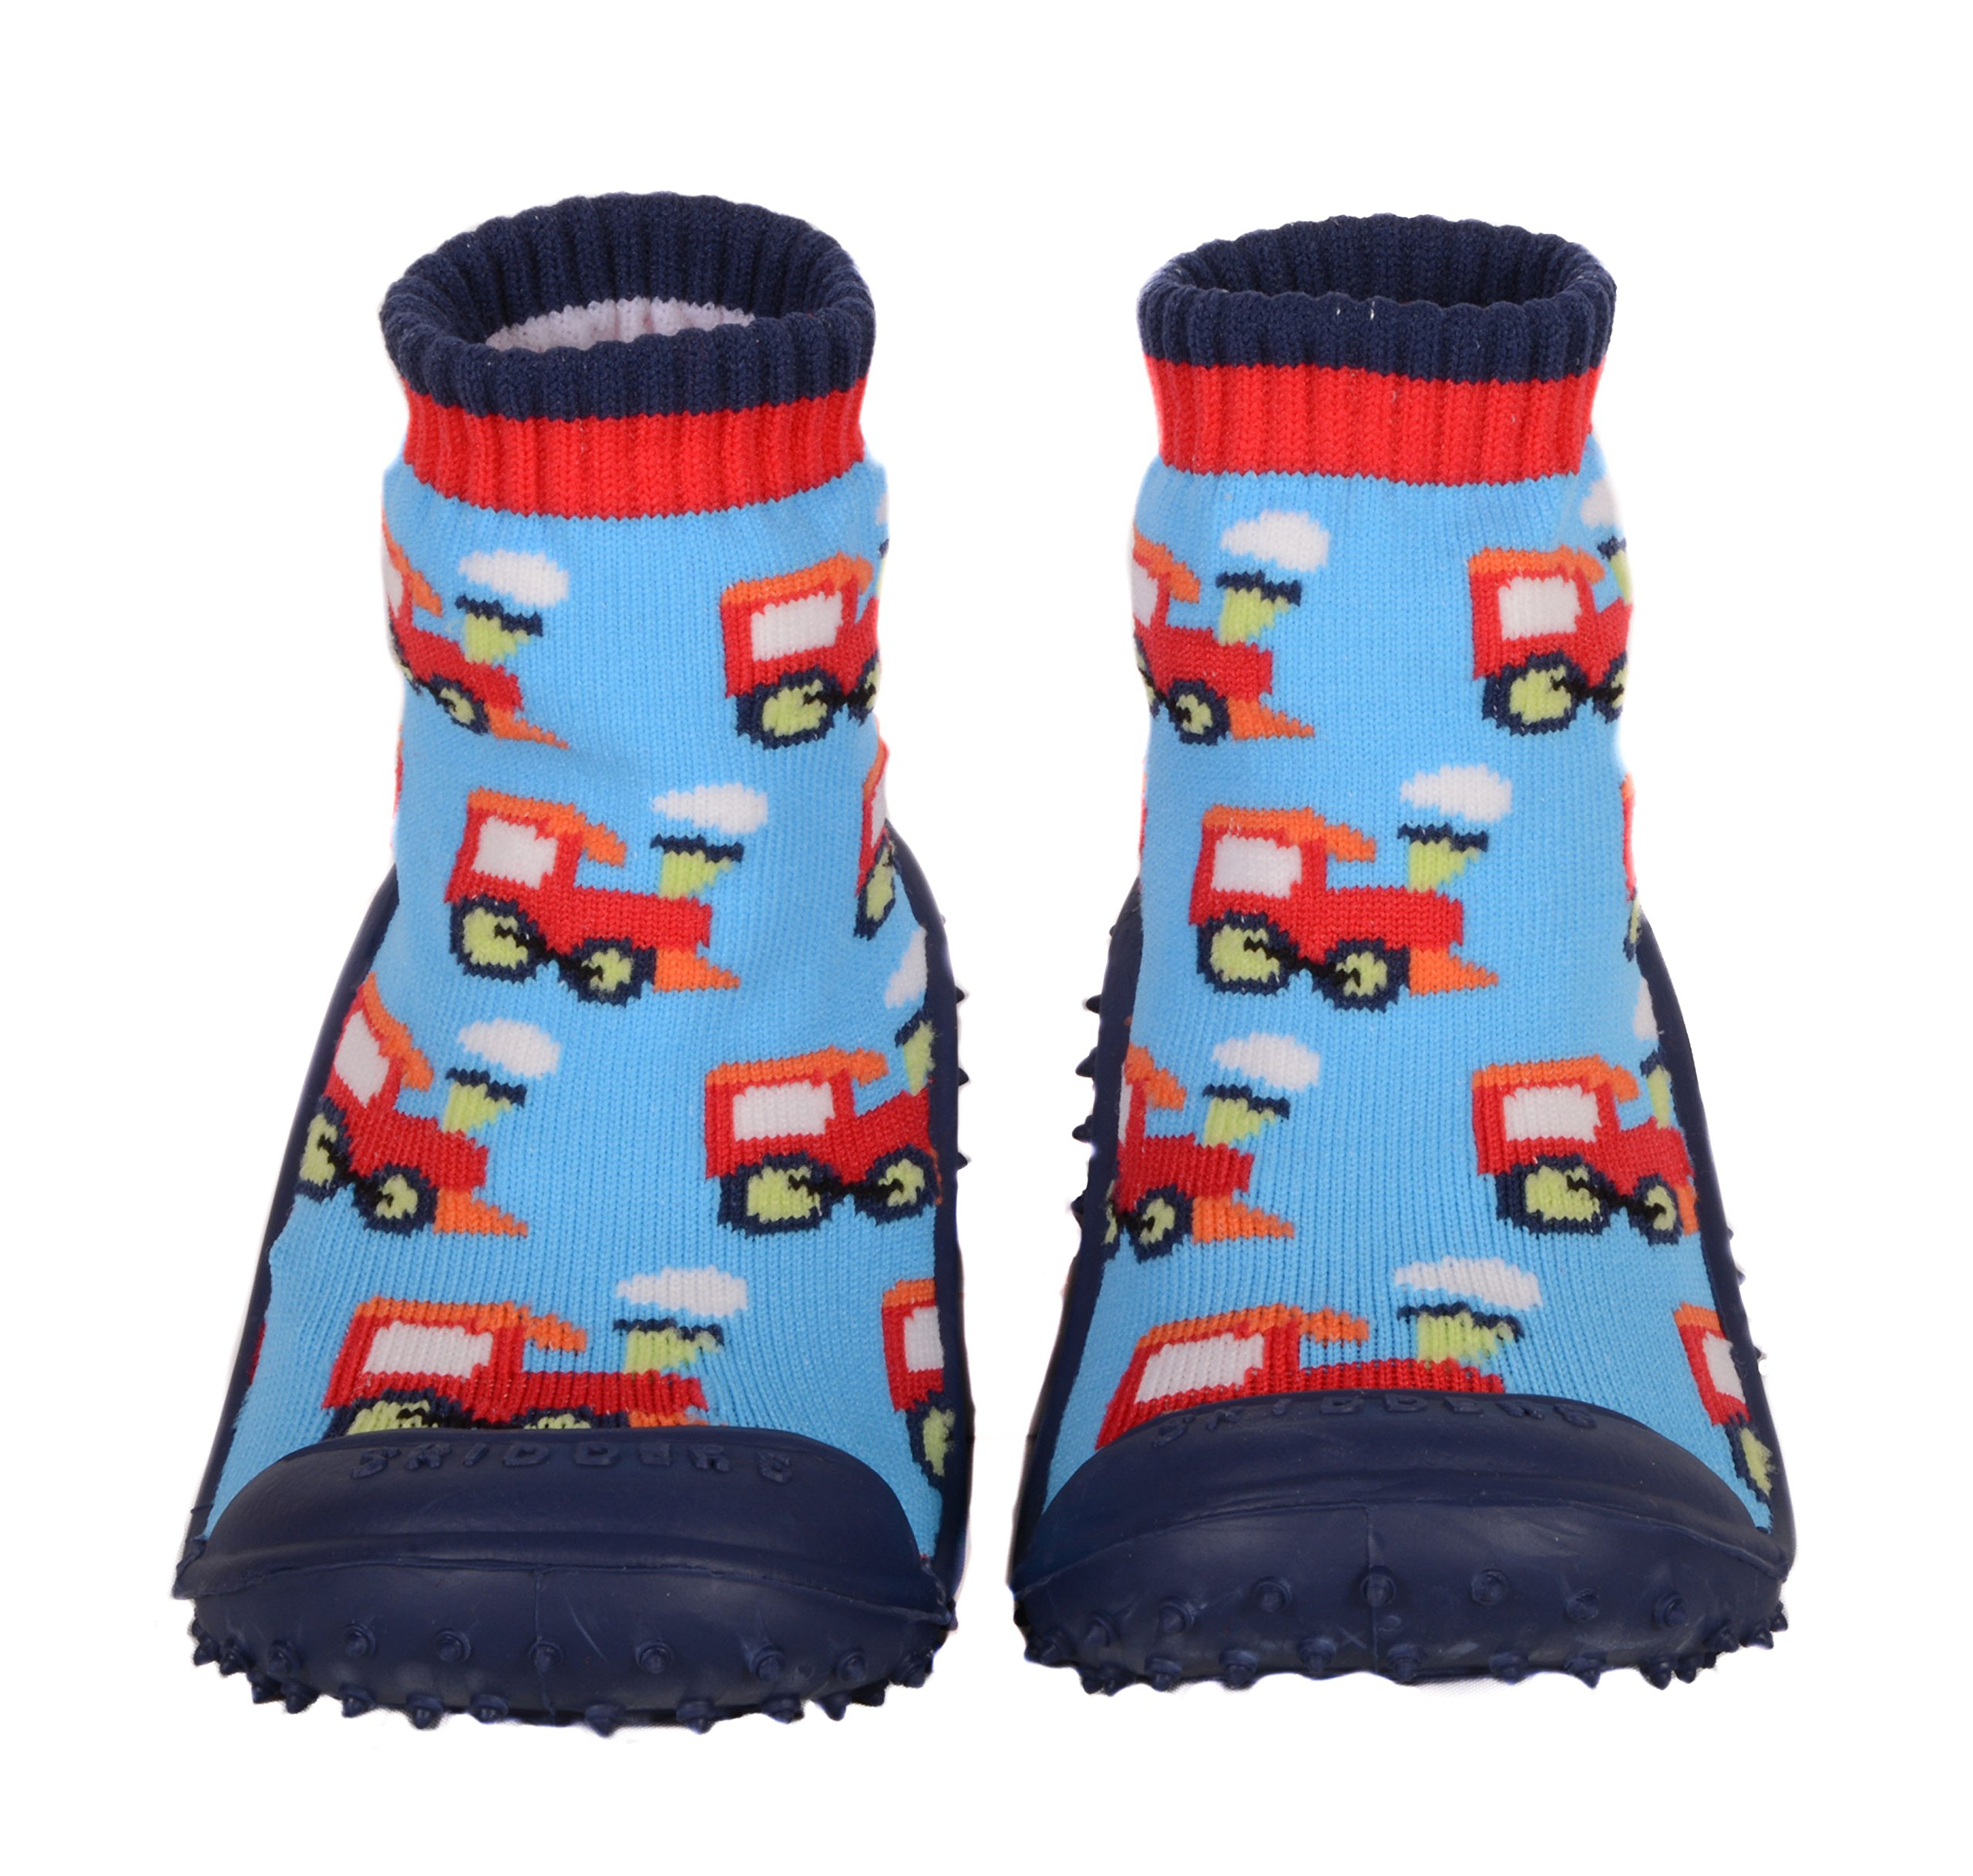 SKIDDERS Baby Toddler Boys Grip Shoes Style 1148BF (2) Blue/Multi-Color